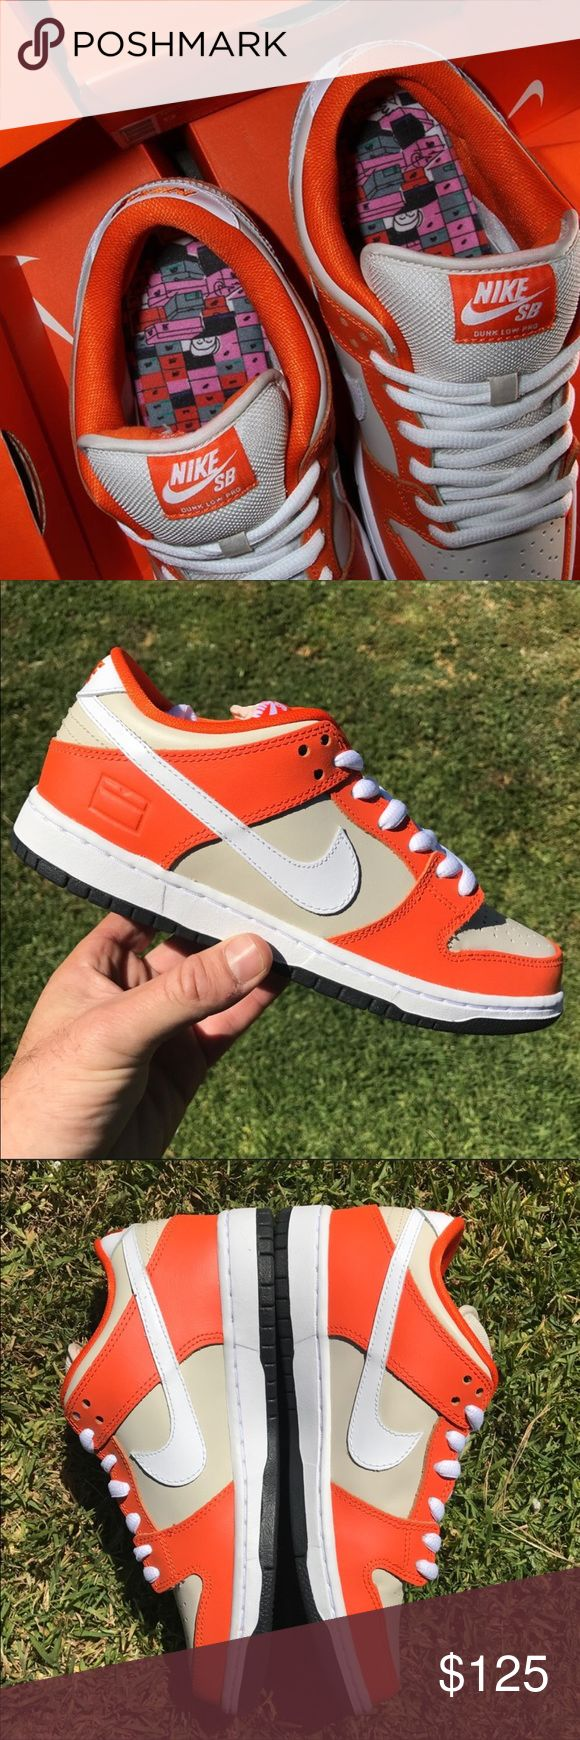 NEW | NIKE SB LOW | ORANGE BOX | SZ 7 MEN NEW NEVER USED Nike SB Dunk LOW PRM  | ORANGE BOX | 100% AUTHENTIC. NO BOX.  SIZE 7 MEN - will also fit women's SZ 8.5 - 9 please be familiar with what size you wear in NIKE MEN shoes PRIOR to ordering.   ONE PAIR IS AVAILABLE.  SHIPS SAME OR NEXT DAY FROM MY SMOKE FREE HOME.   REASONABLE OFFERS WILL ONLY BE CONSIDERED THROUGH THE OFFER BUTTON. ANY OFFERS IN COMMENTS WILL BE IGNORED.   BUNDLE DISCOUNT SUBJECT TO MY APPROVAL. ✨   ALL PRODUCT IS 100%…